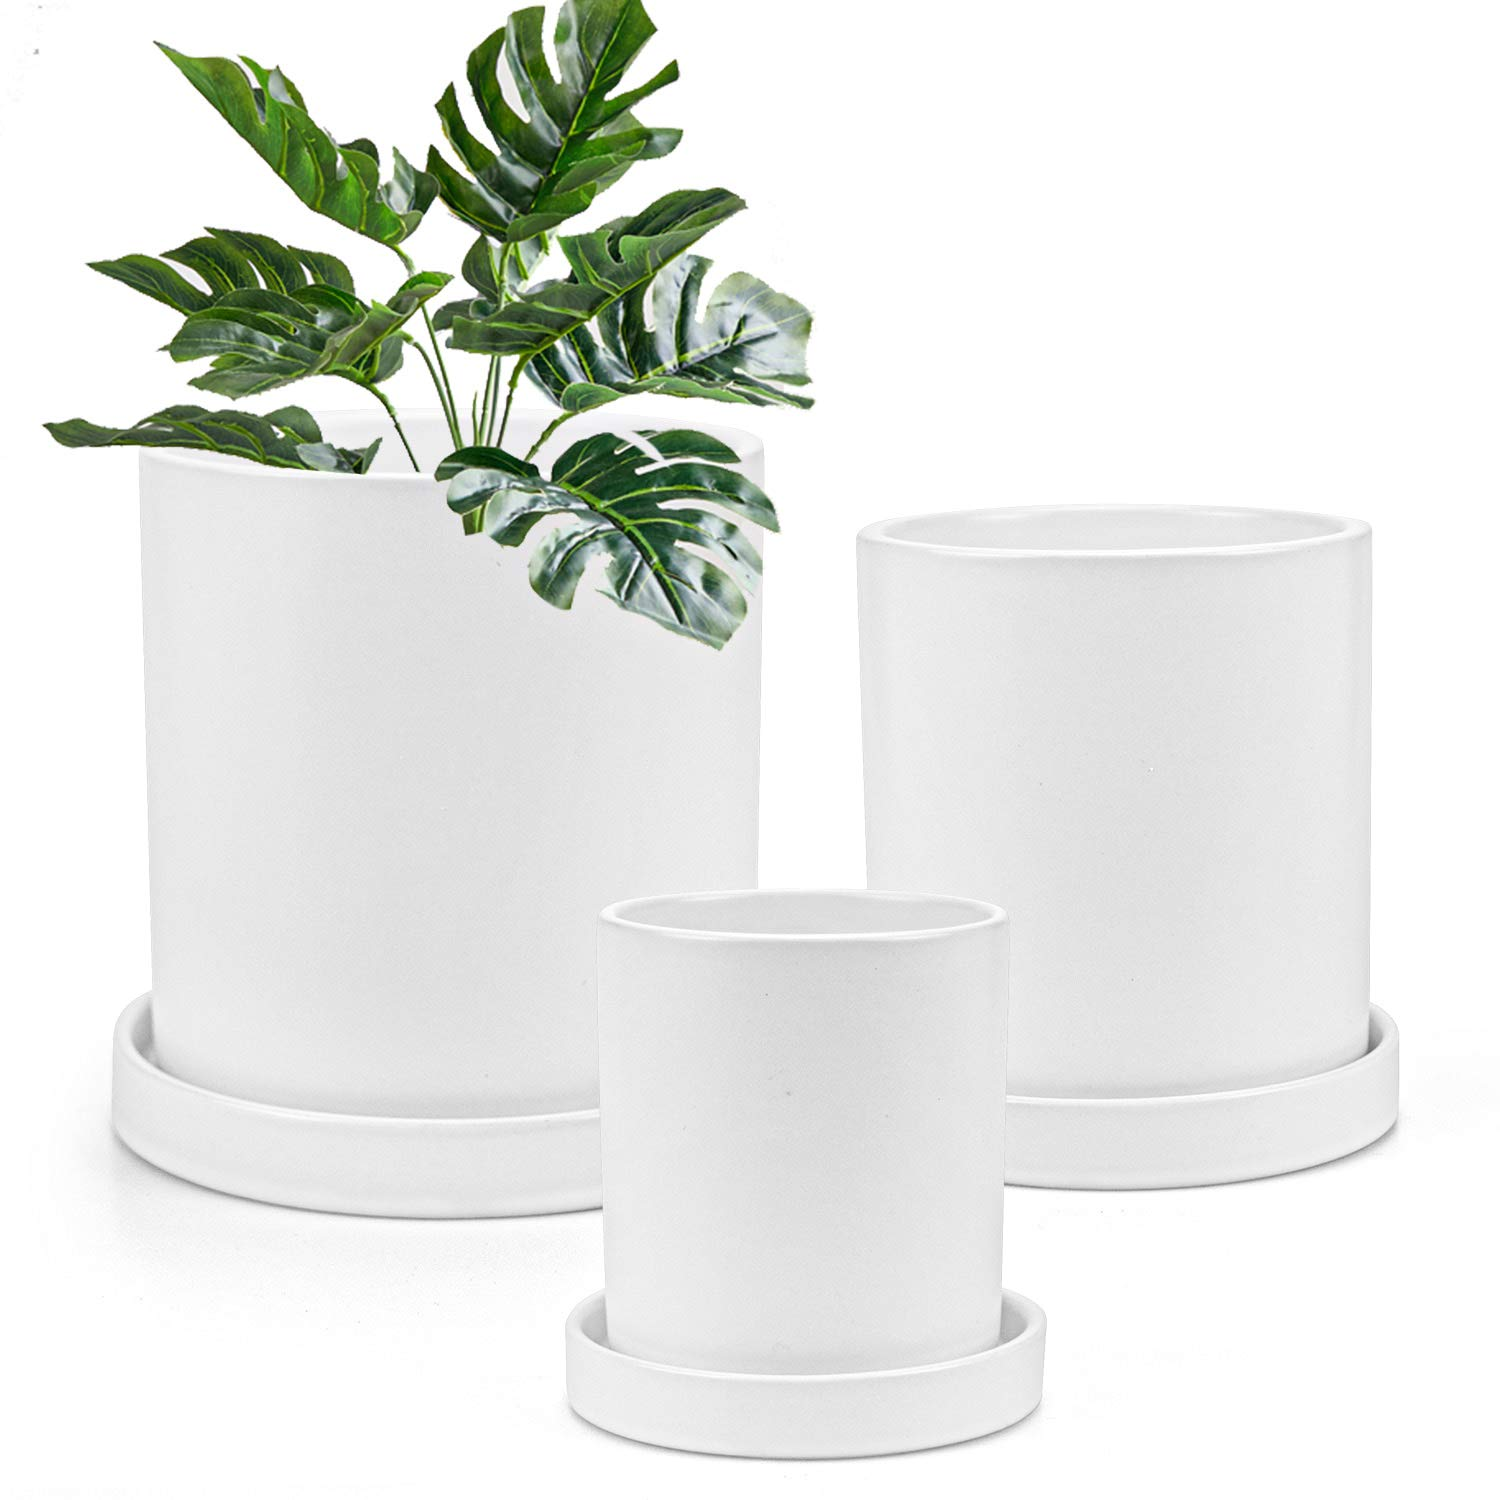 Flower Pots,Small to Large Sized Round Planter Pots,Ceramic Plants Containers,Succulent Pots with Drainage Hole,White Garden Pots 3 Pack